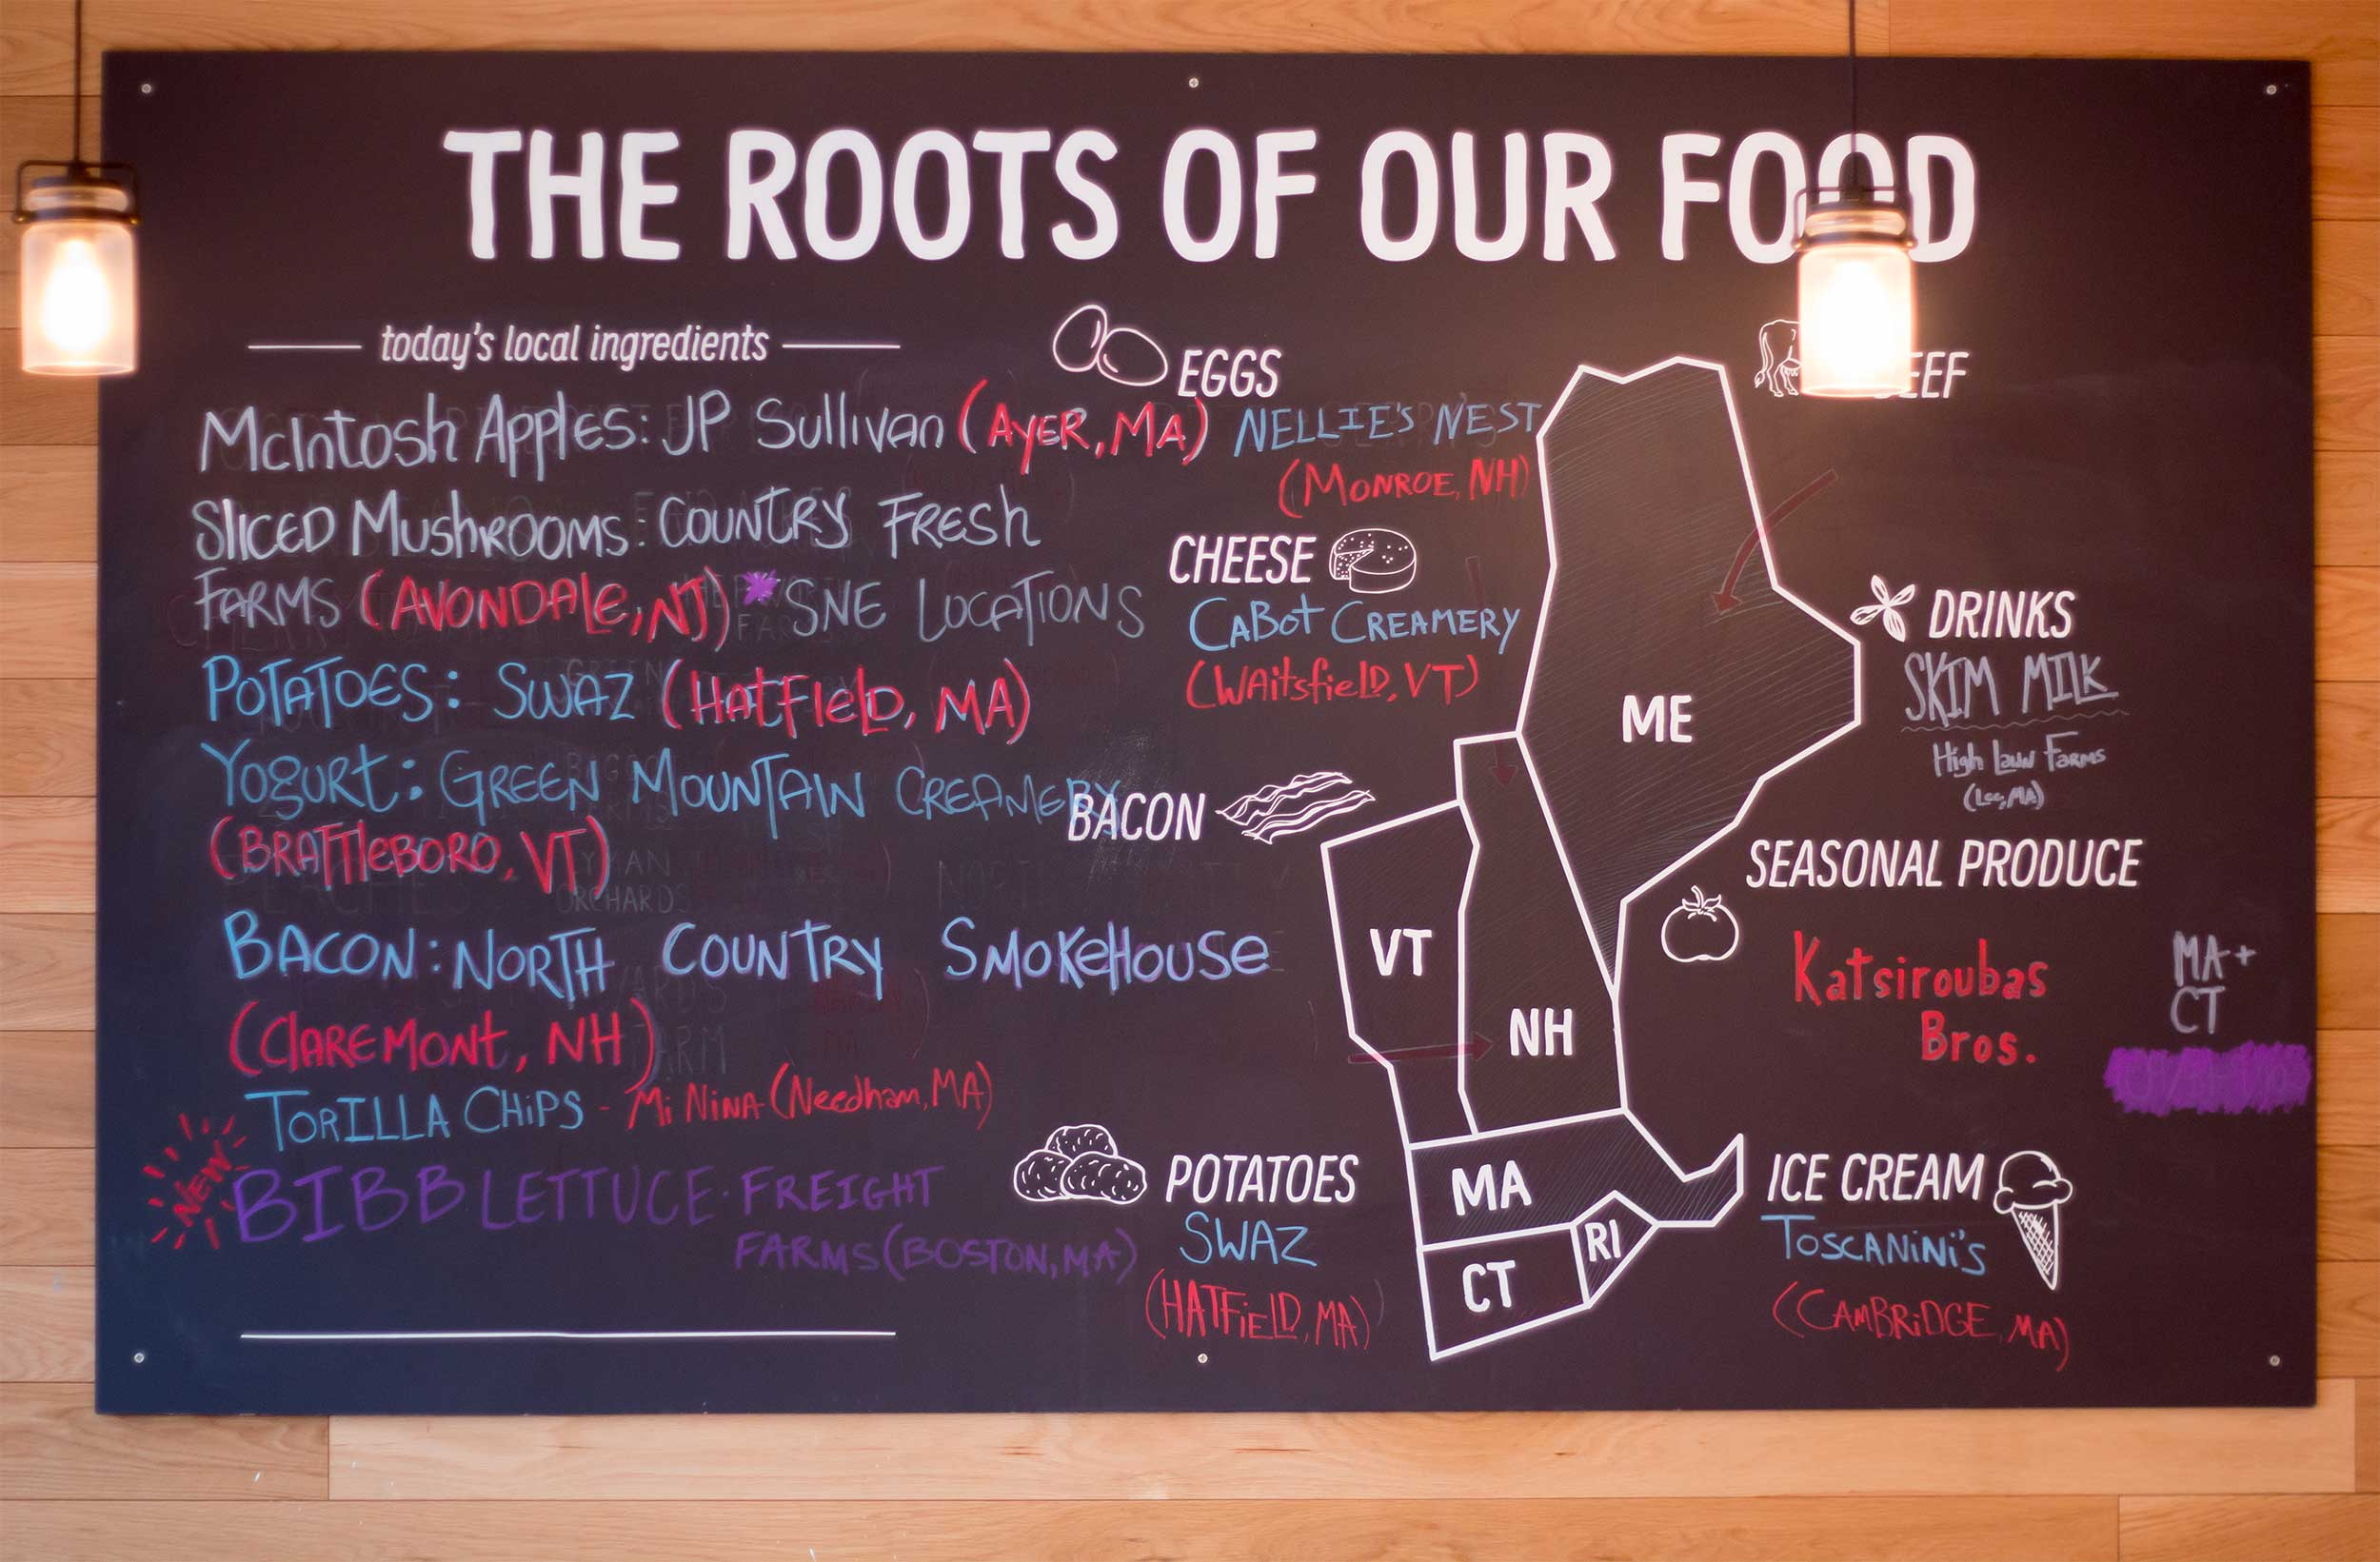 Freight Farms Bibb Lettuce makes it onto the B.GOOD chalk board as a local supplier!